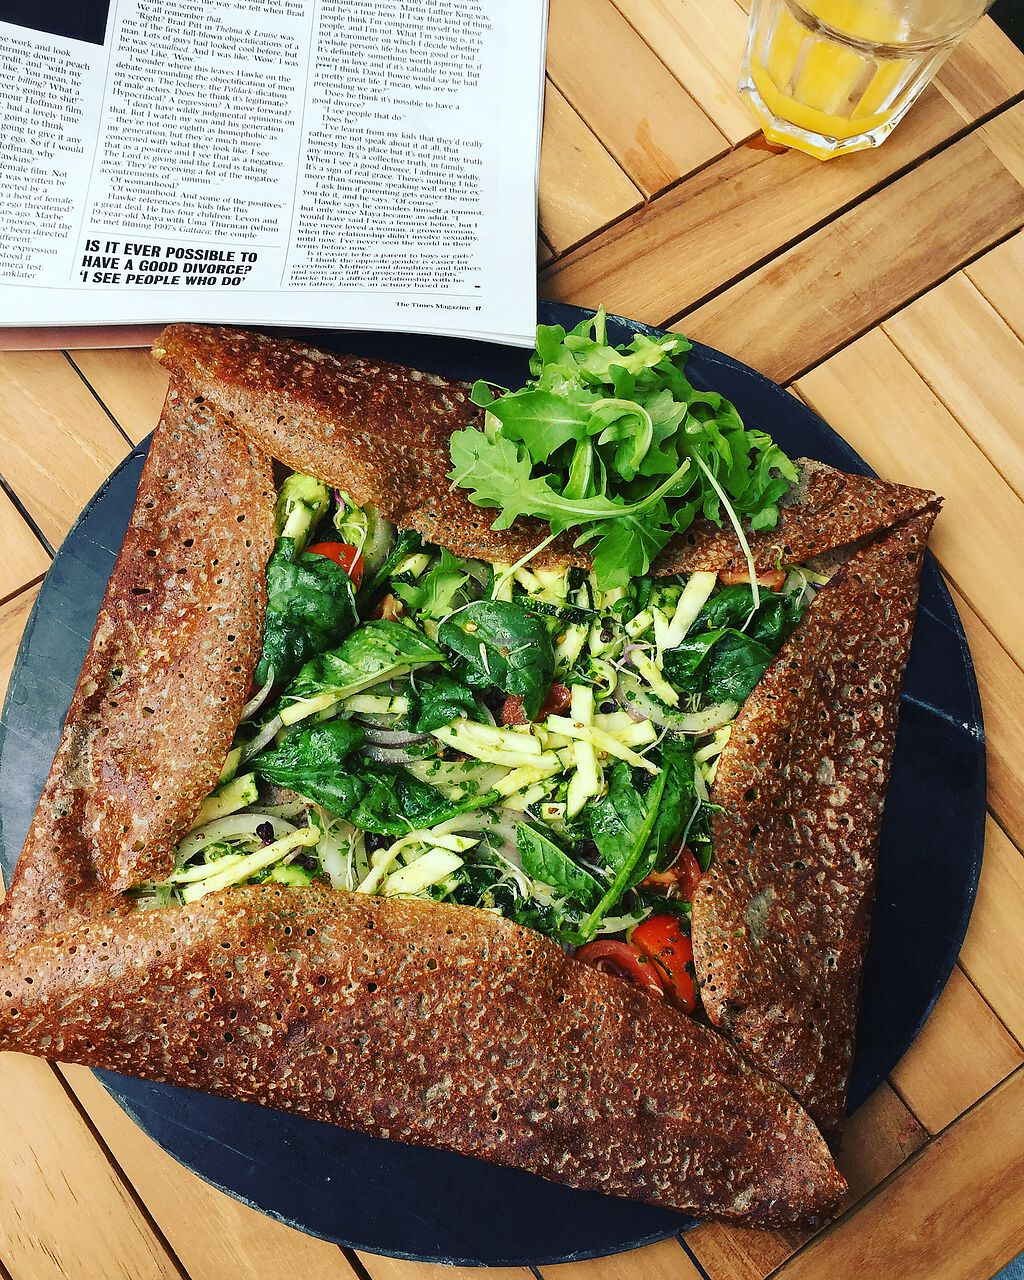 """Photo of Crepes a la carte  by <a href=""""/members/profile/EvaLeBadezet"""">EvaLeBadezet</a> <br/>plant based galette and wild garlic sauce  <br/> August 21, 2017  - <a href='/contact/abuse/image/91777/295121'>Report</a>"""